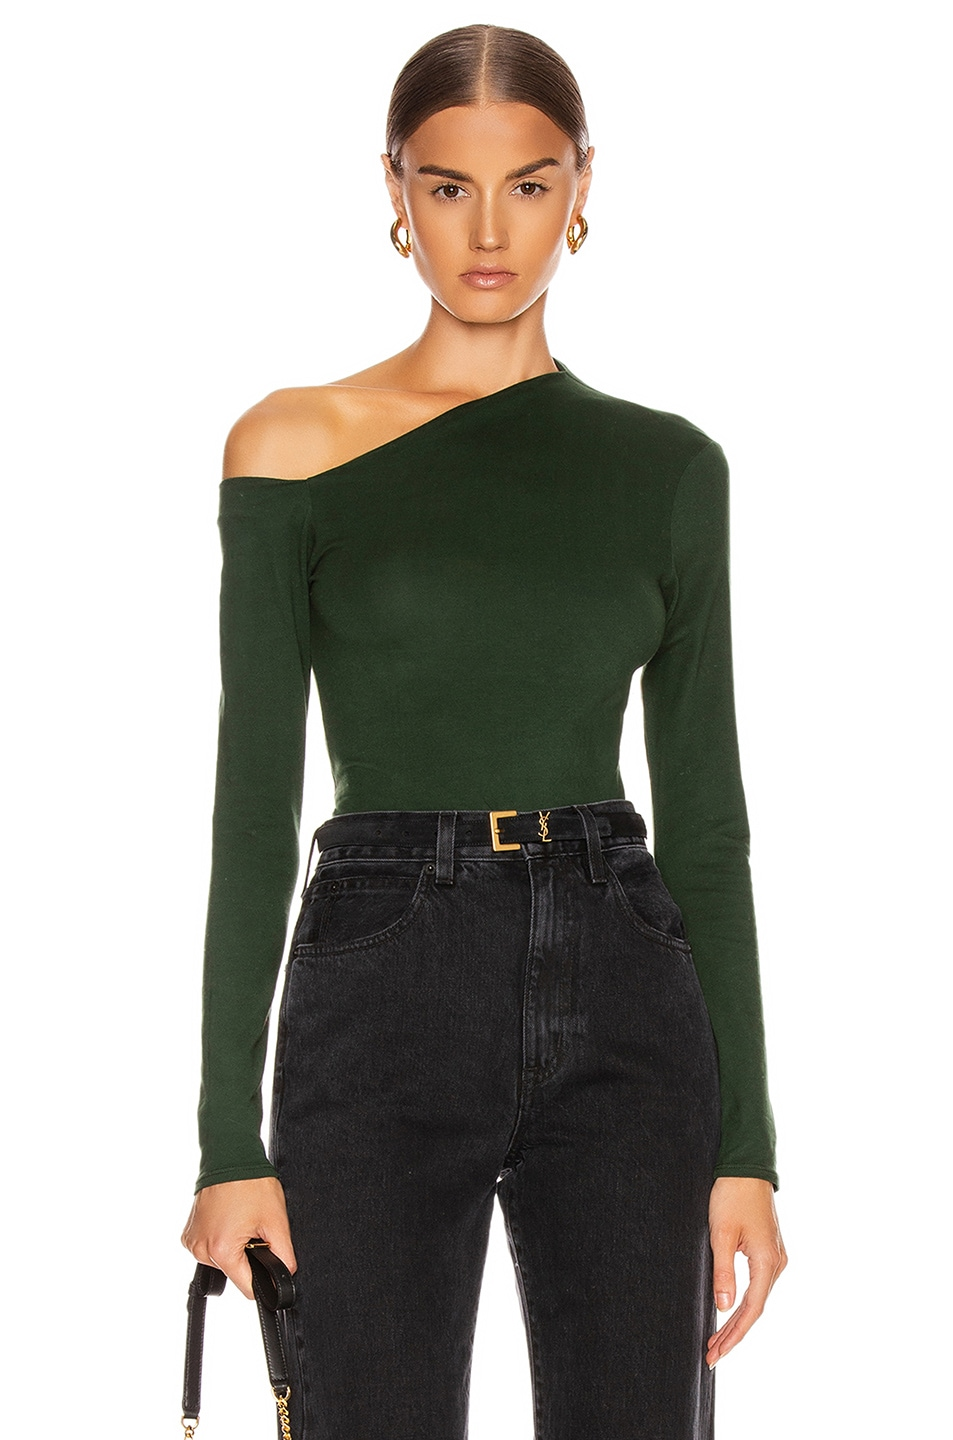 Image 1 of Enza Costa Angled Exposed Shoulder Long Sleeve Top in Evergreen